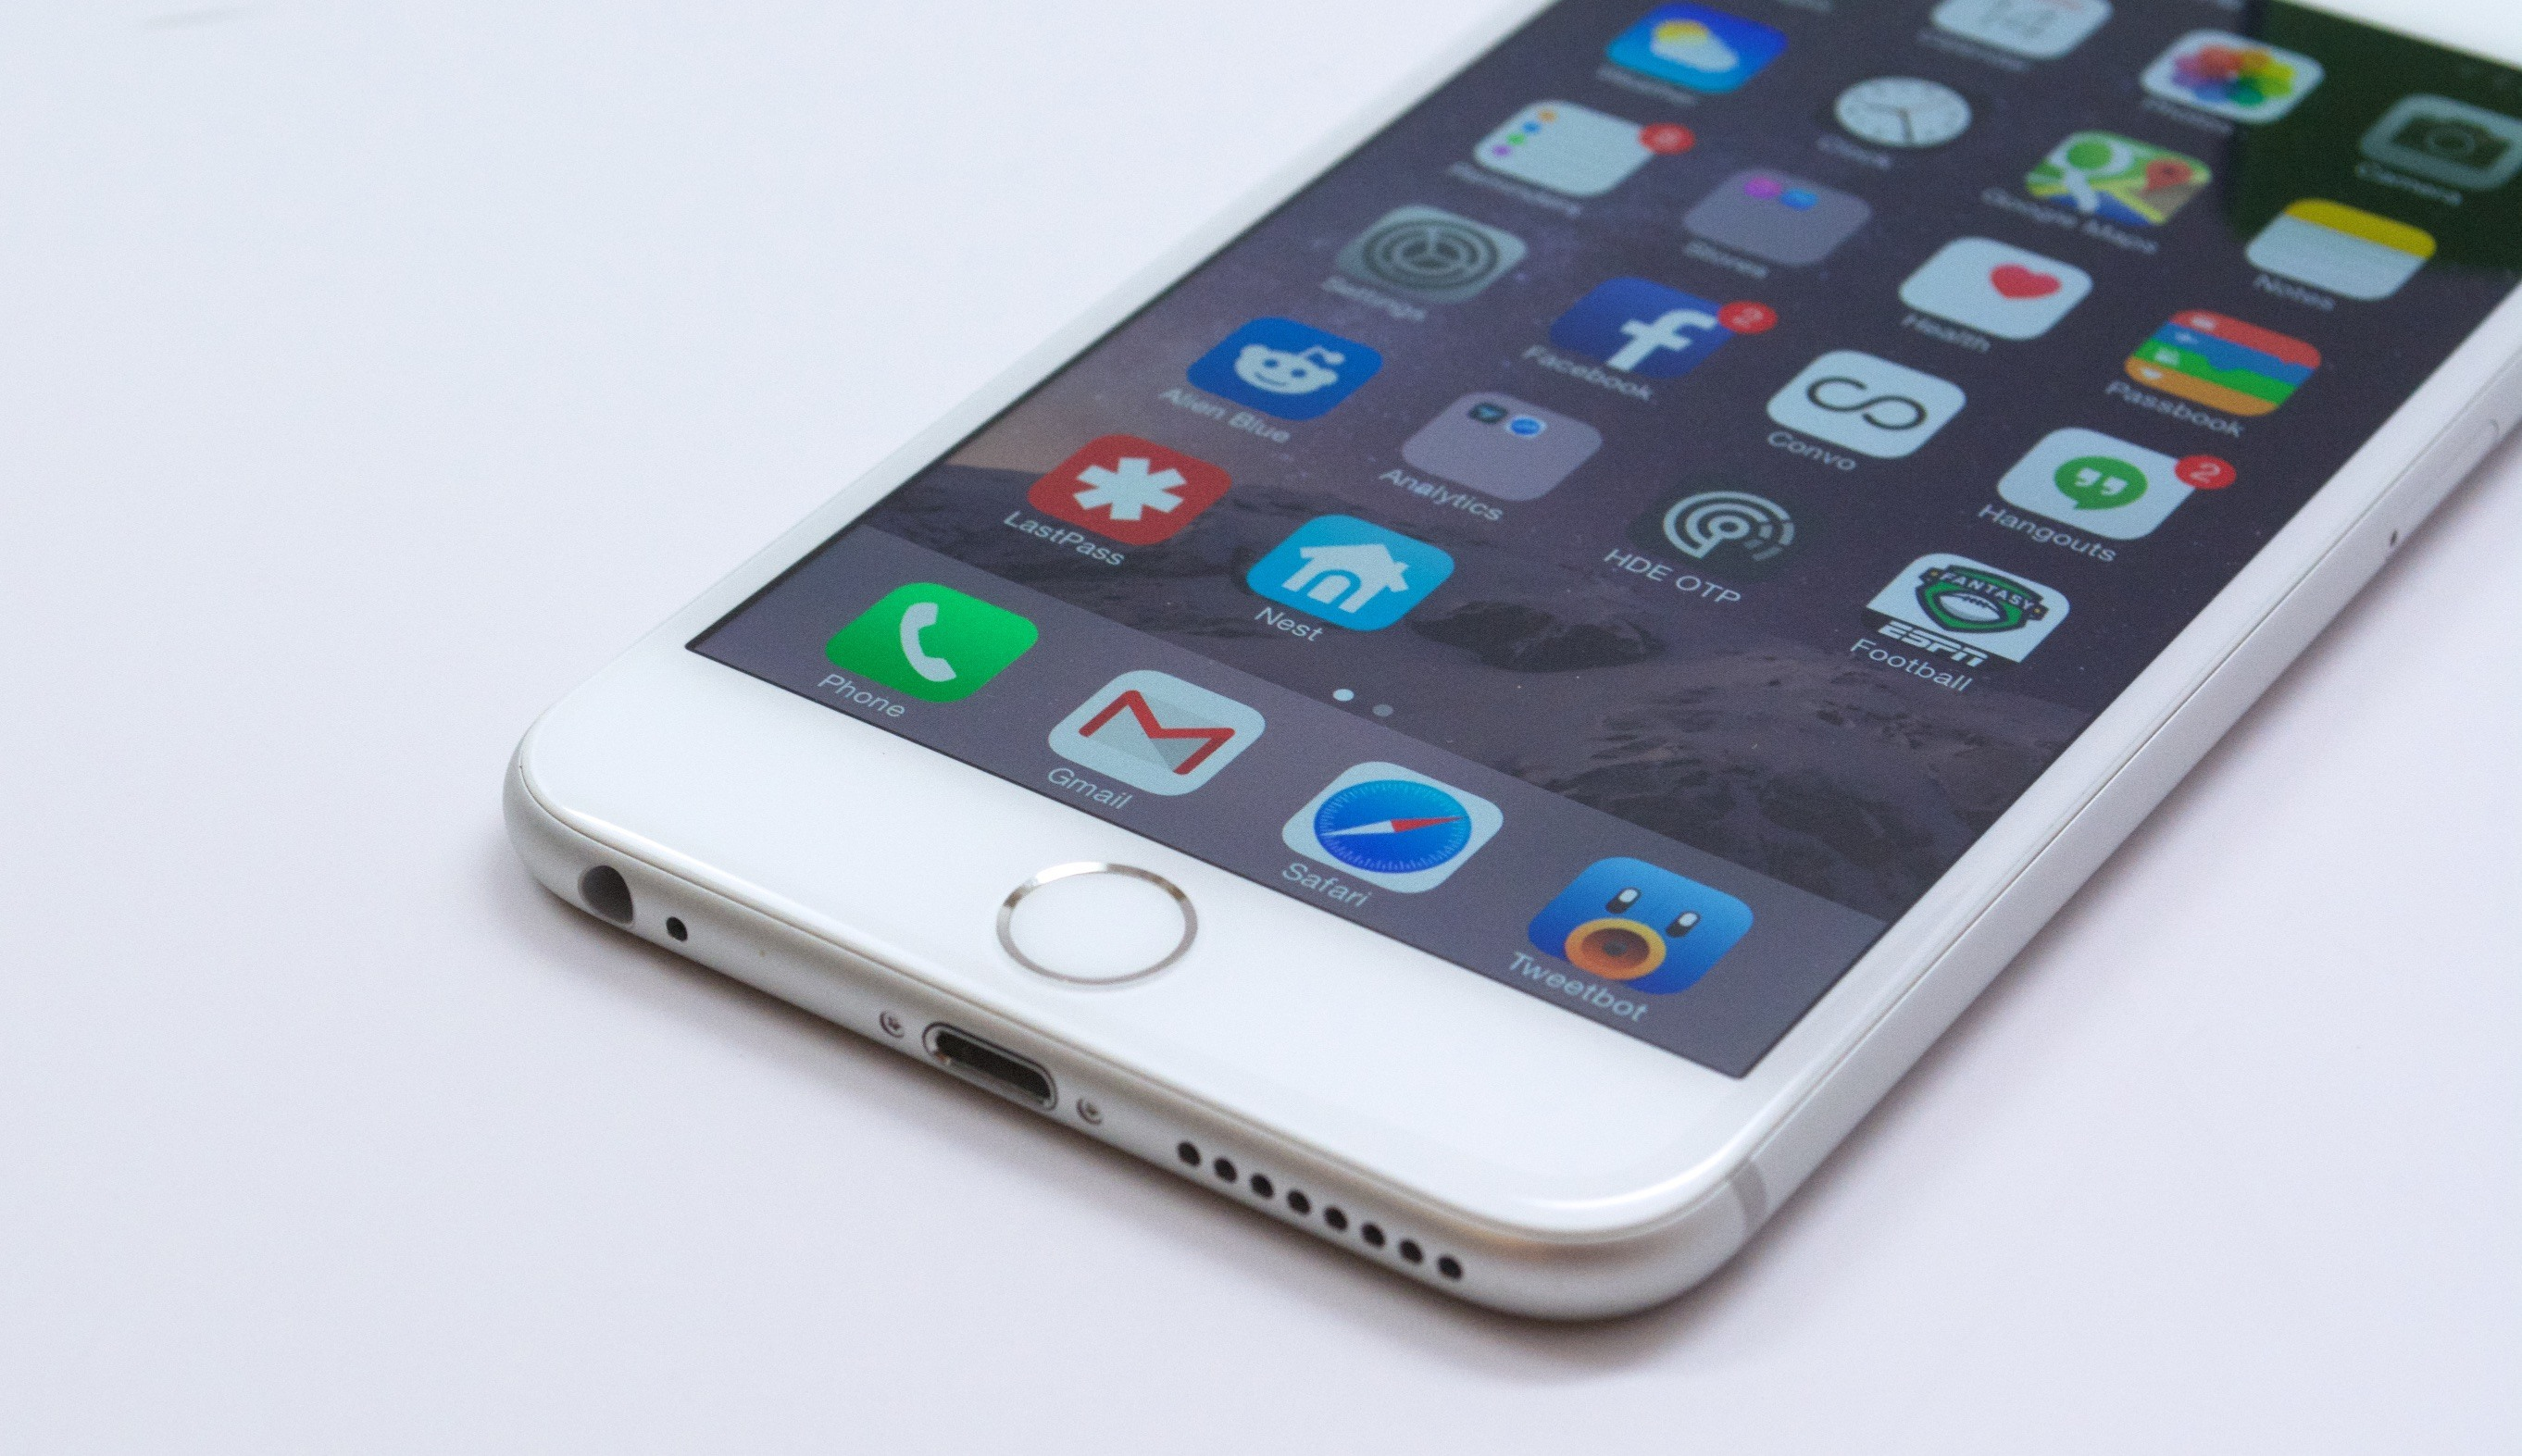 What we learned about iOS 8.4 on the iPhone 6 Plus after two weeks.